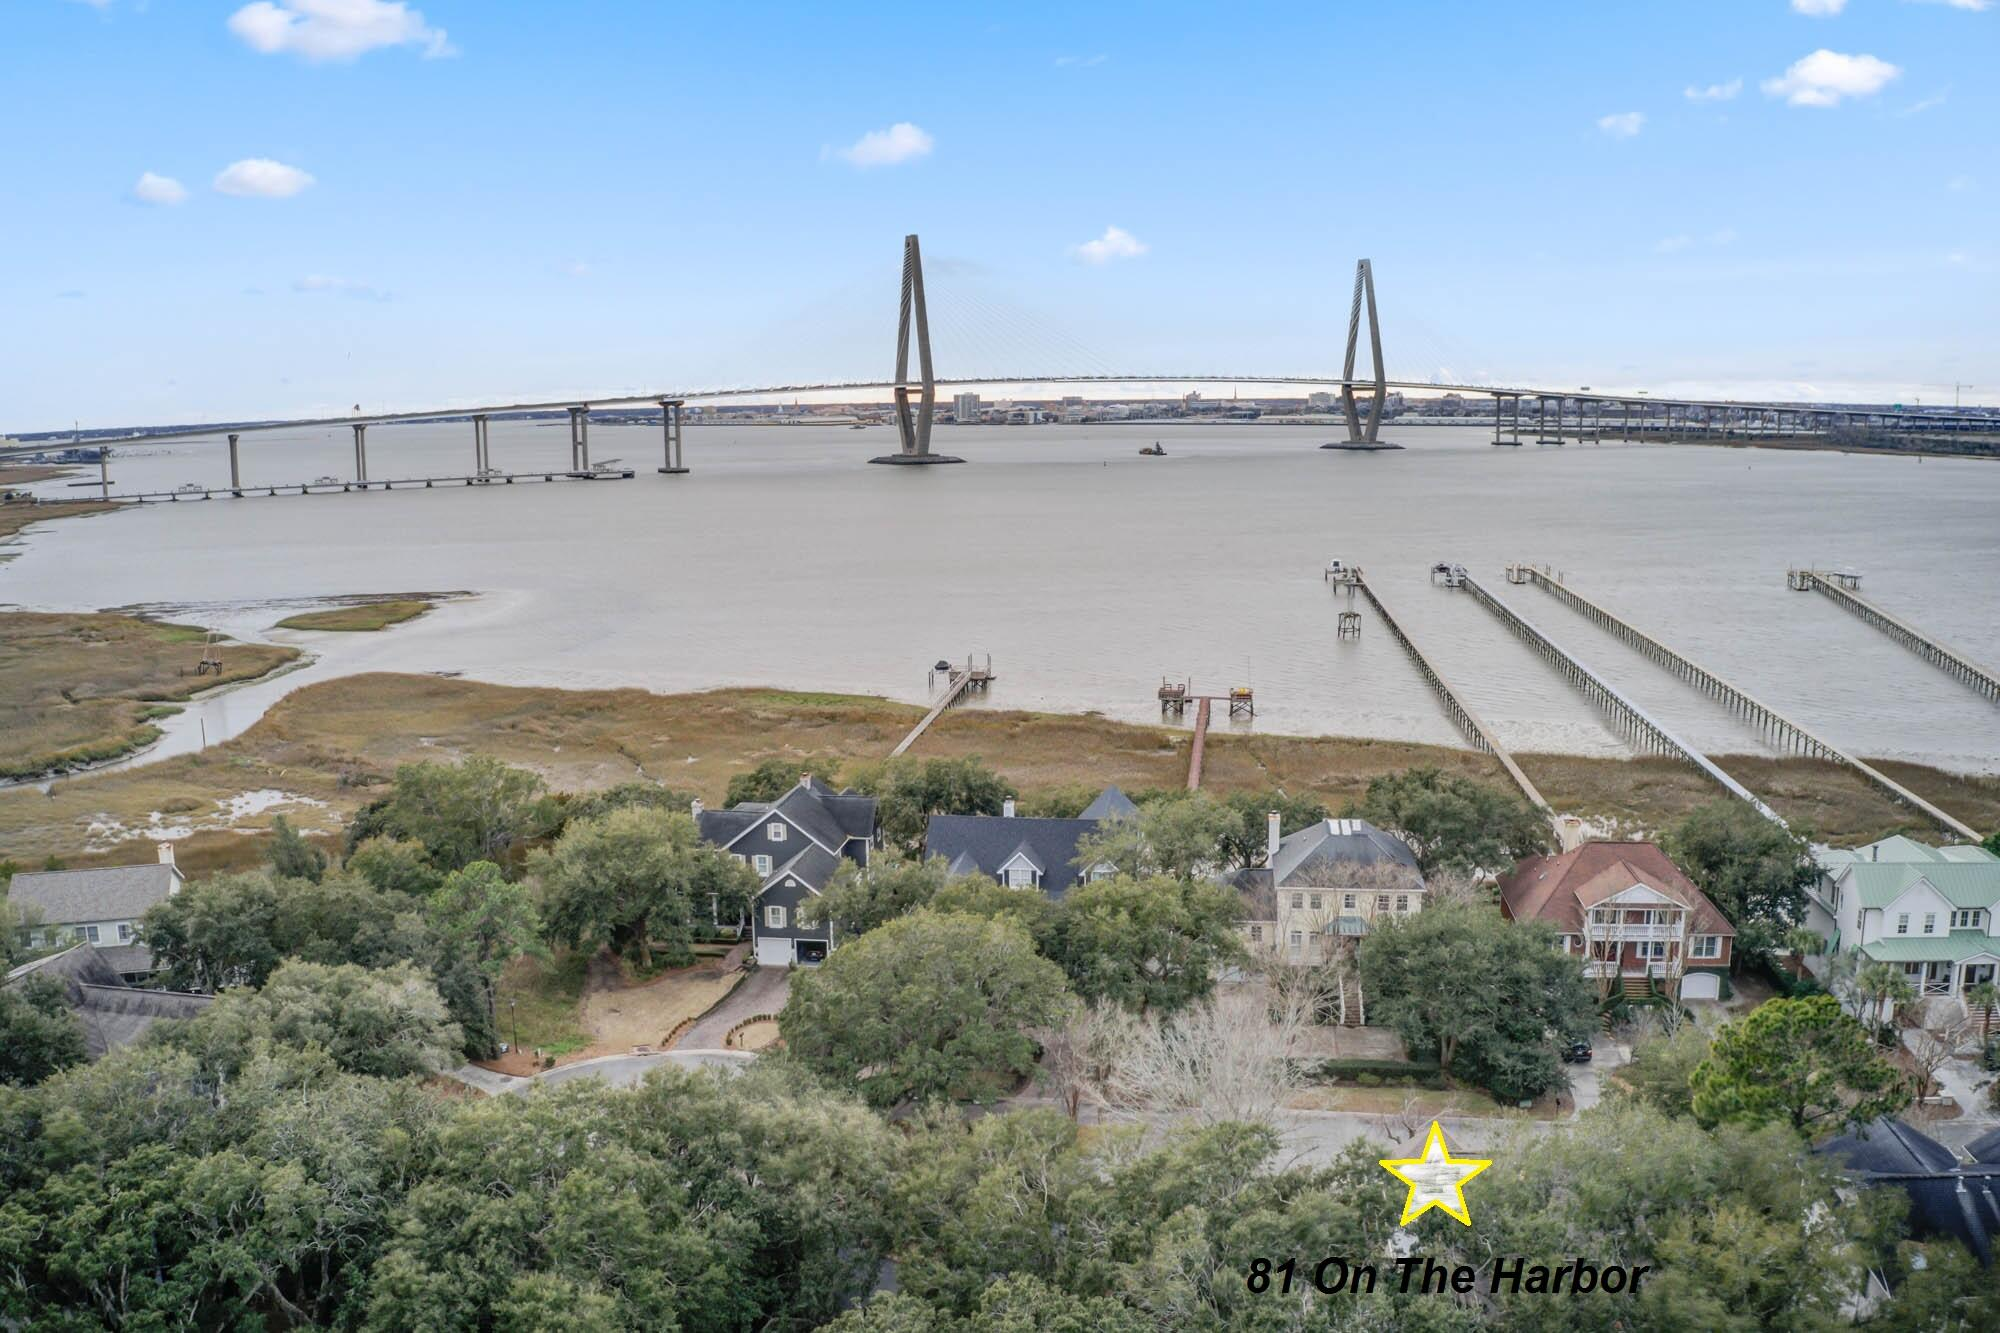 On The Harbor Homes For Sale - 81 On The Harbor, Mount Pleasant, SC - 31